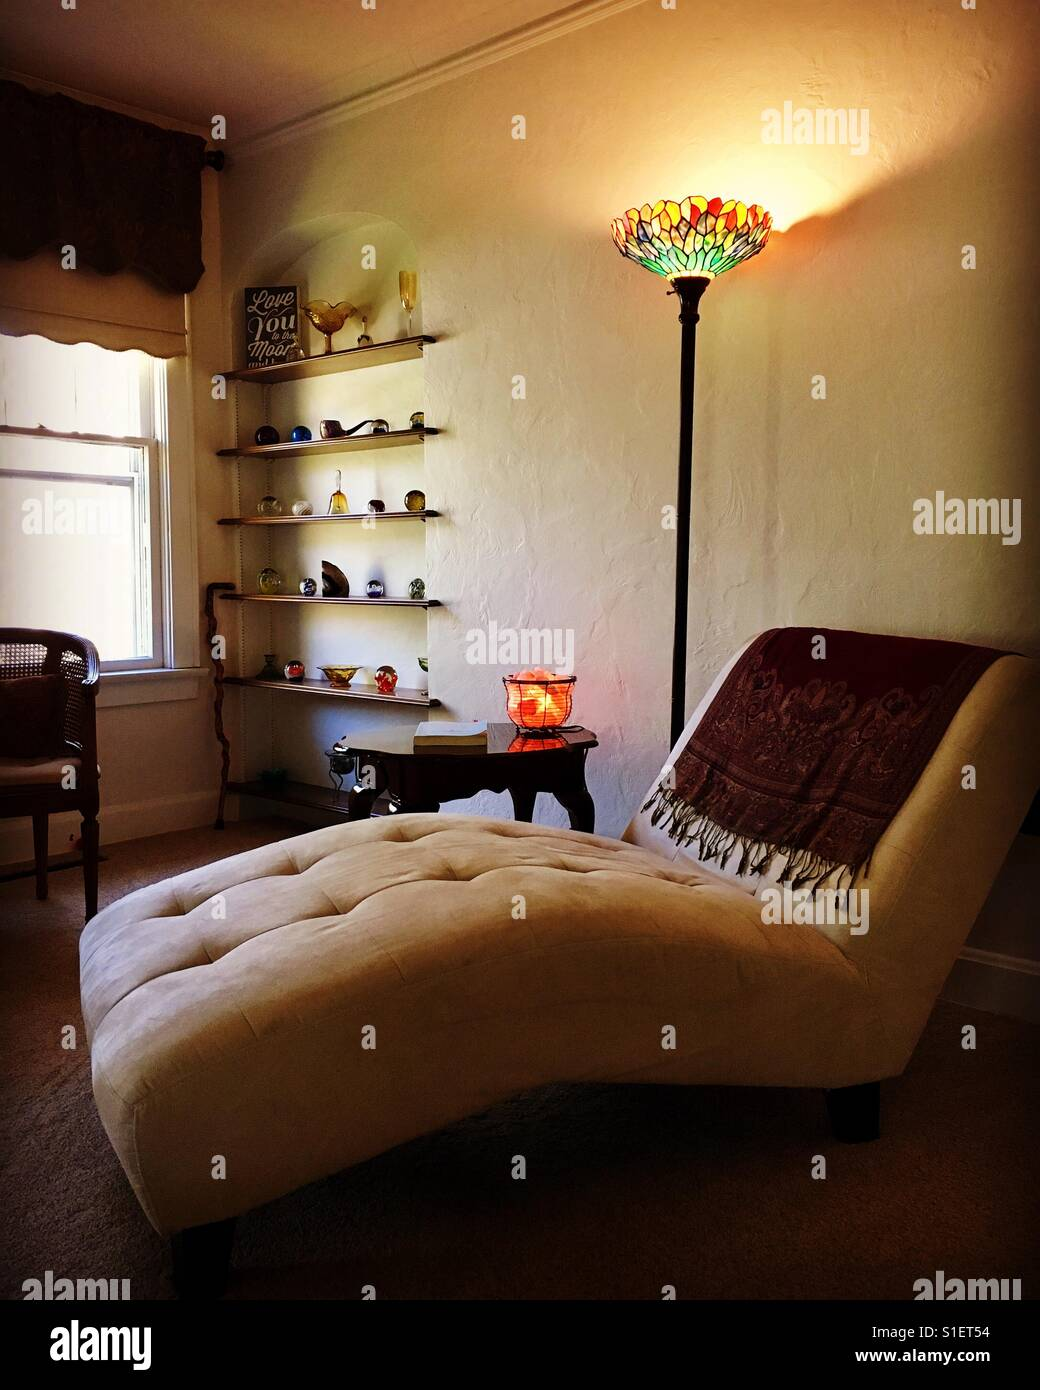 My Living Room Chaise Lounge Chair And Tiffany Lamp Built